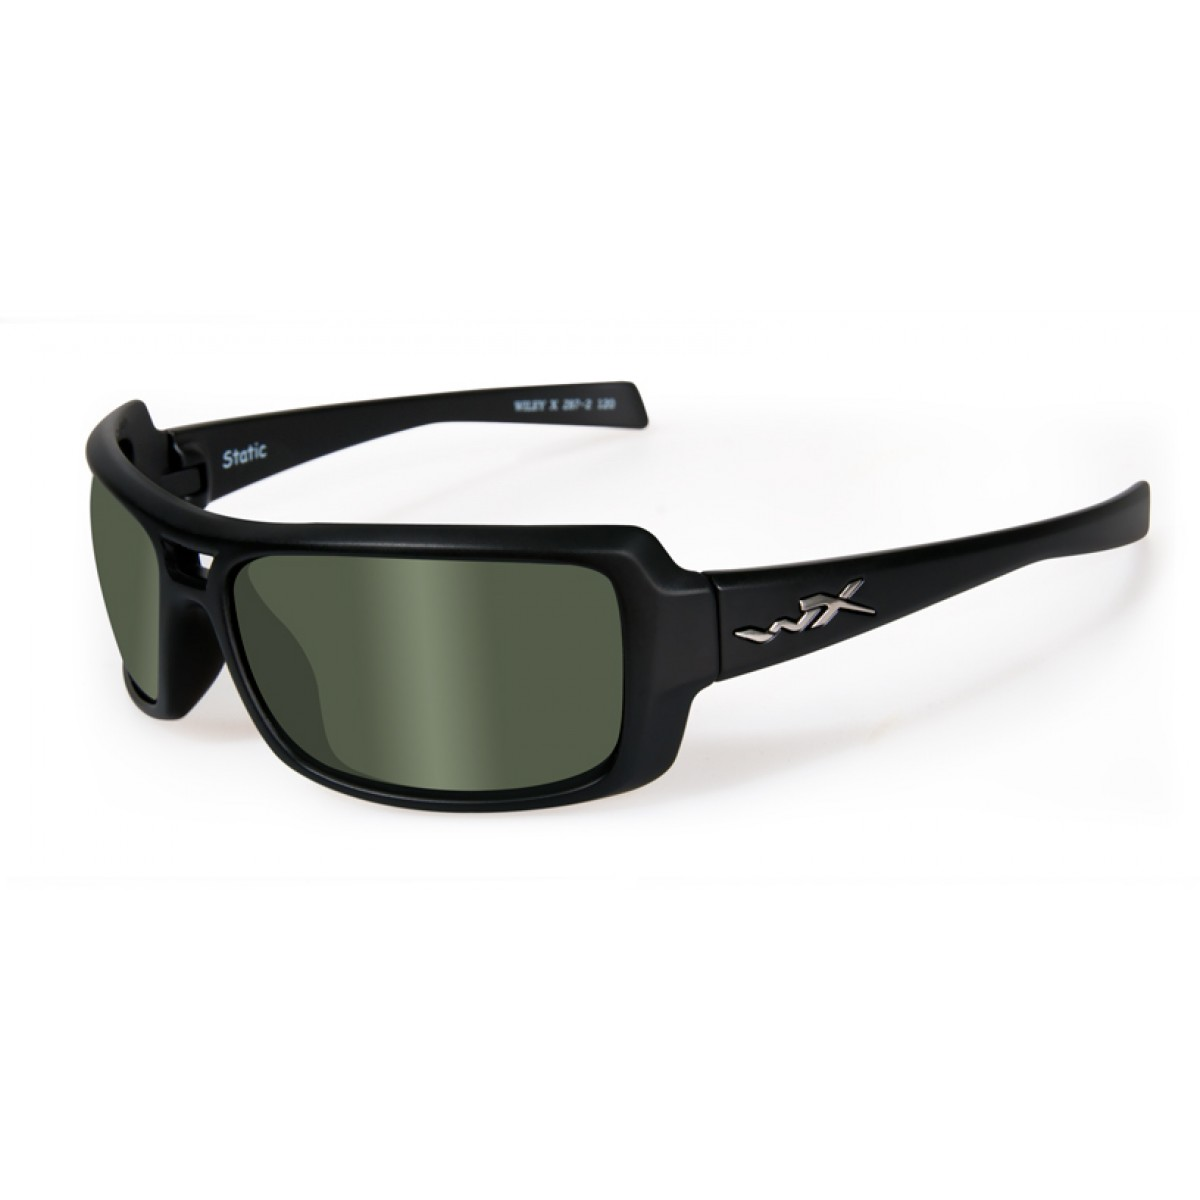 Sunglasses Glasgow  wiley x static street polarized sunglasses glasgow angling centre